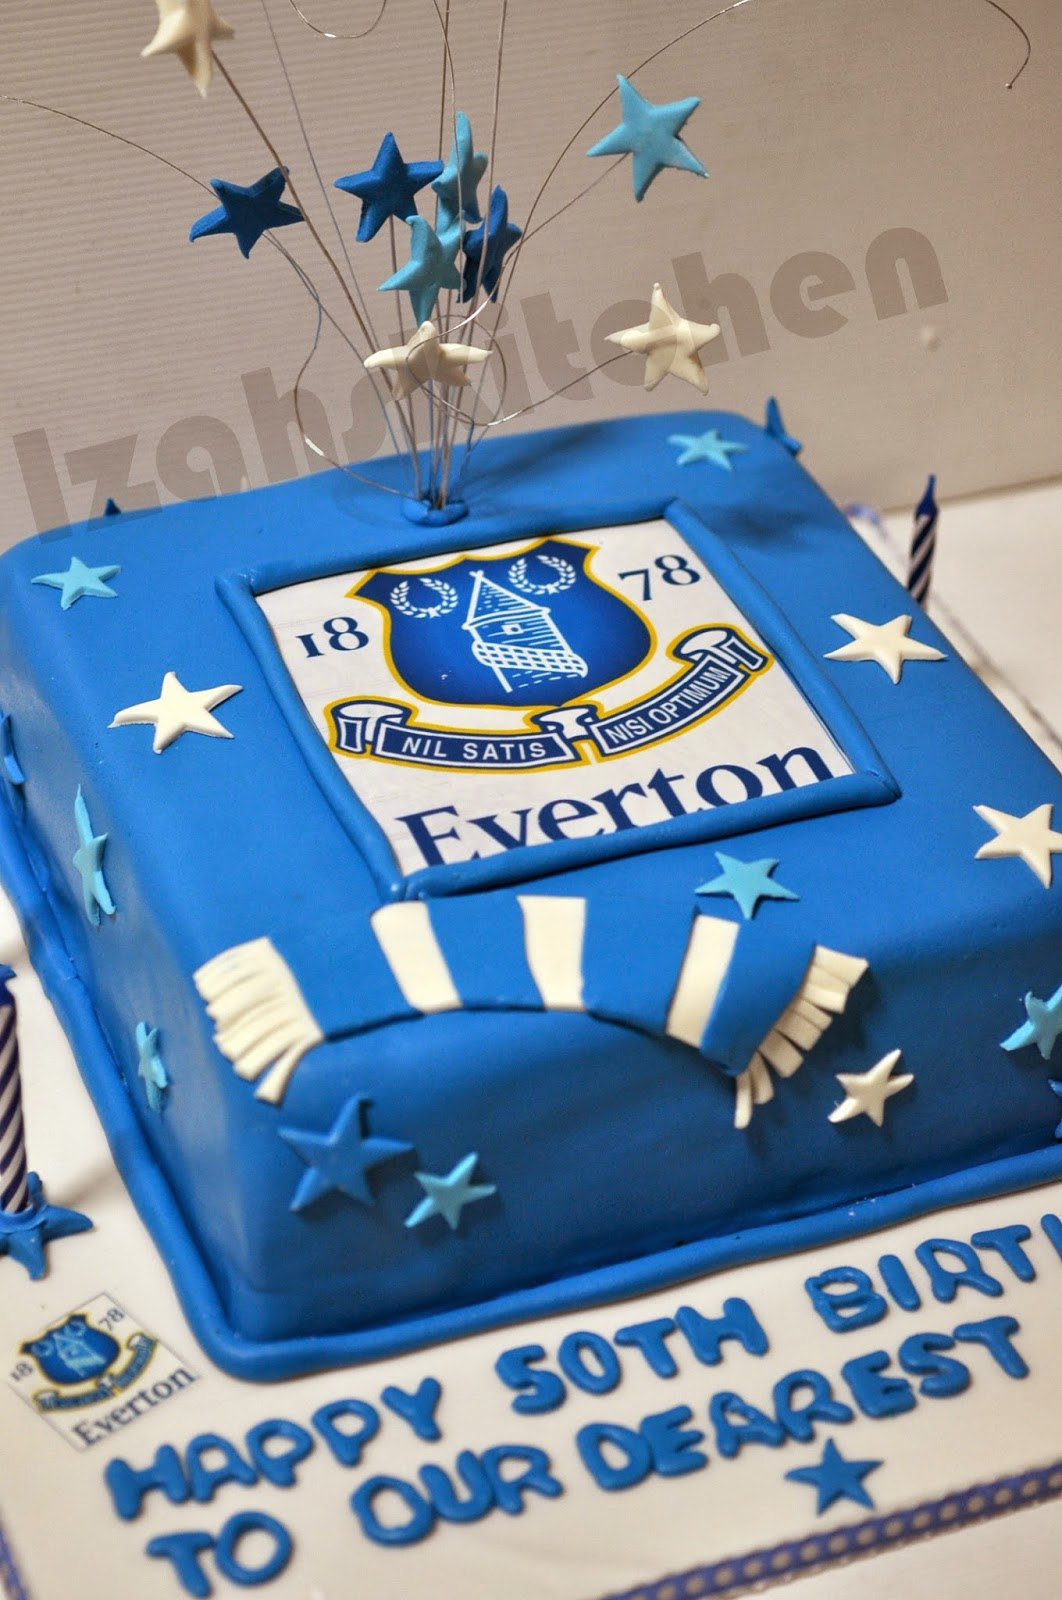 Everton FC Themed Cake